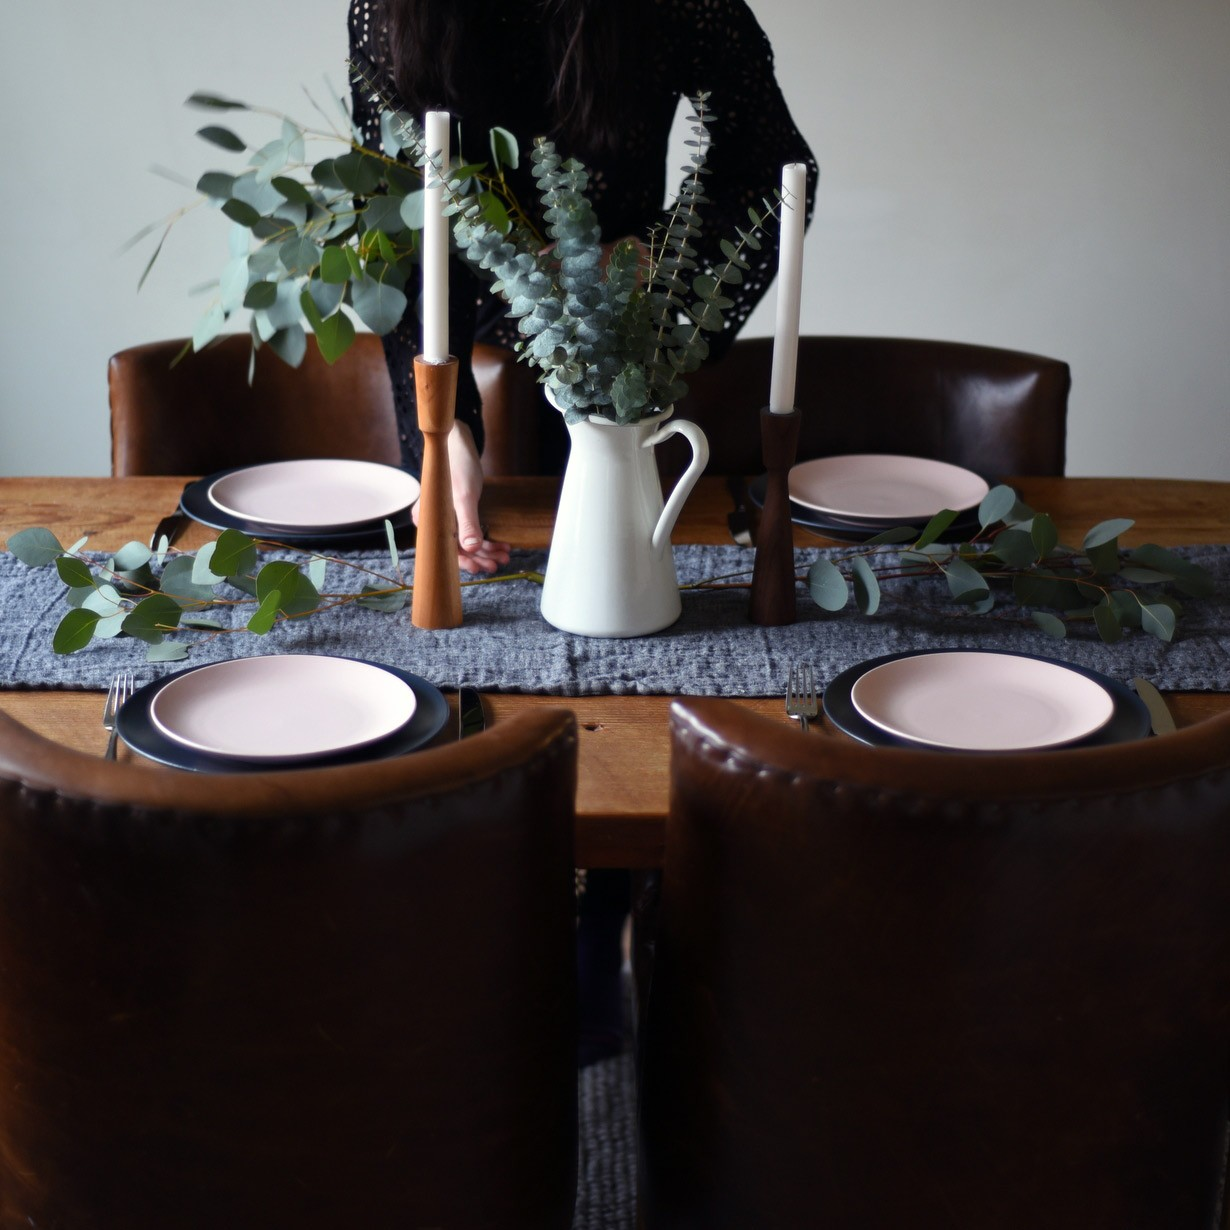 Having people over should be fun, not stressful. We've got you covered with 5 fun ideas for throwing a dinner party that's easy, laid back, but still feels like a million bucks. Read on to learn more.